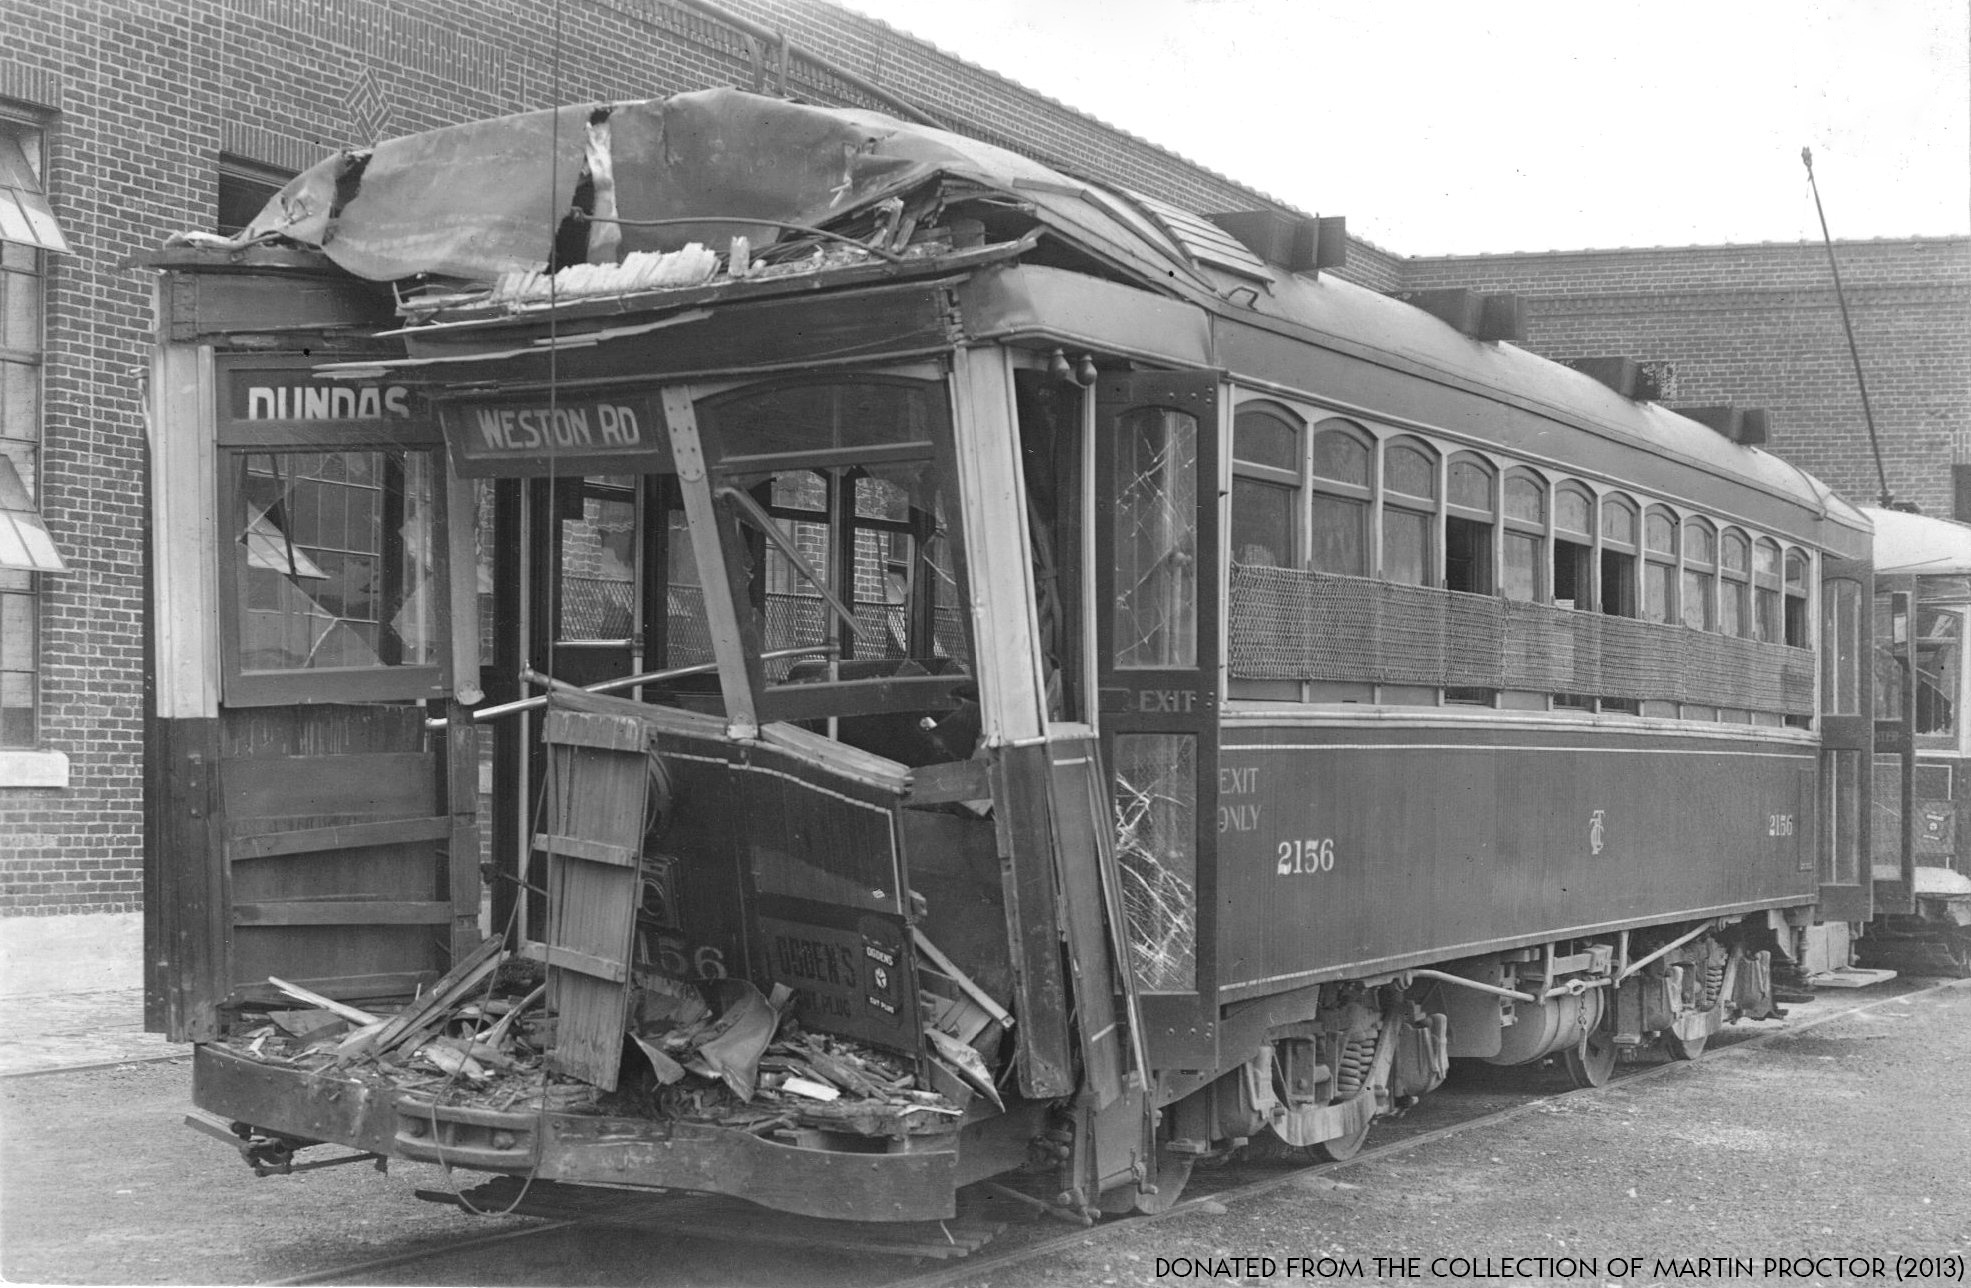 File:Peter Witt streetcar 2156, after crashing on the Weston Road route -a